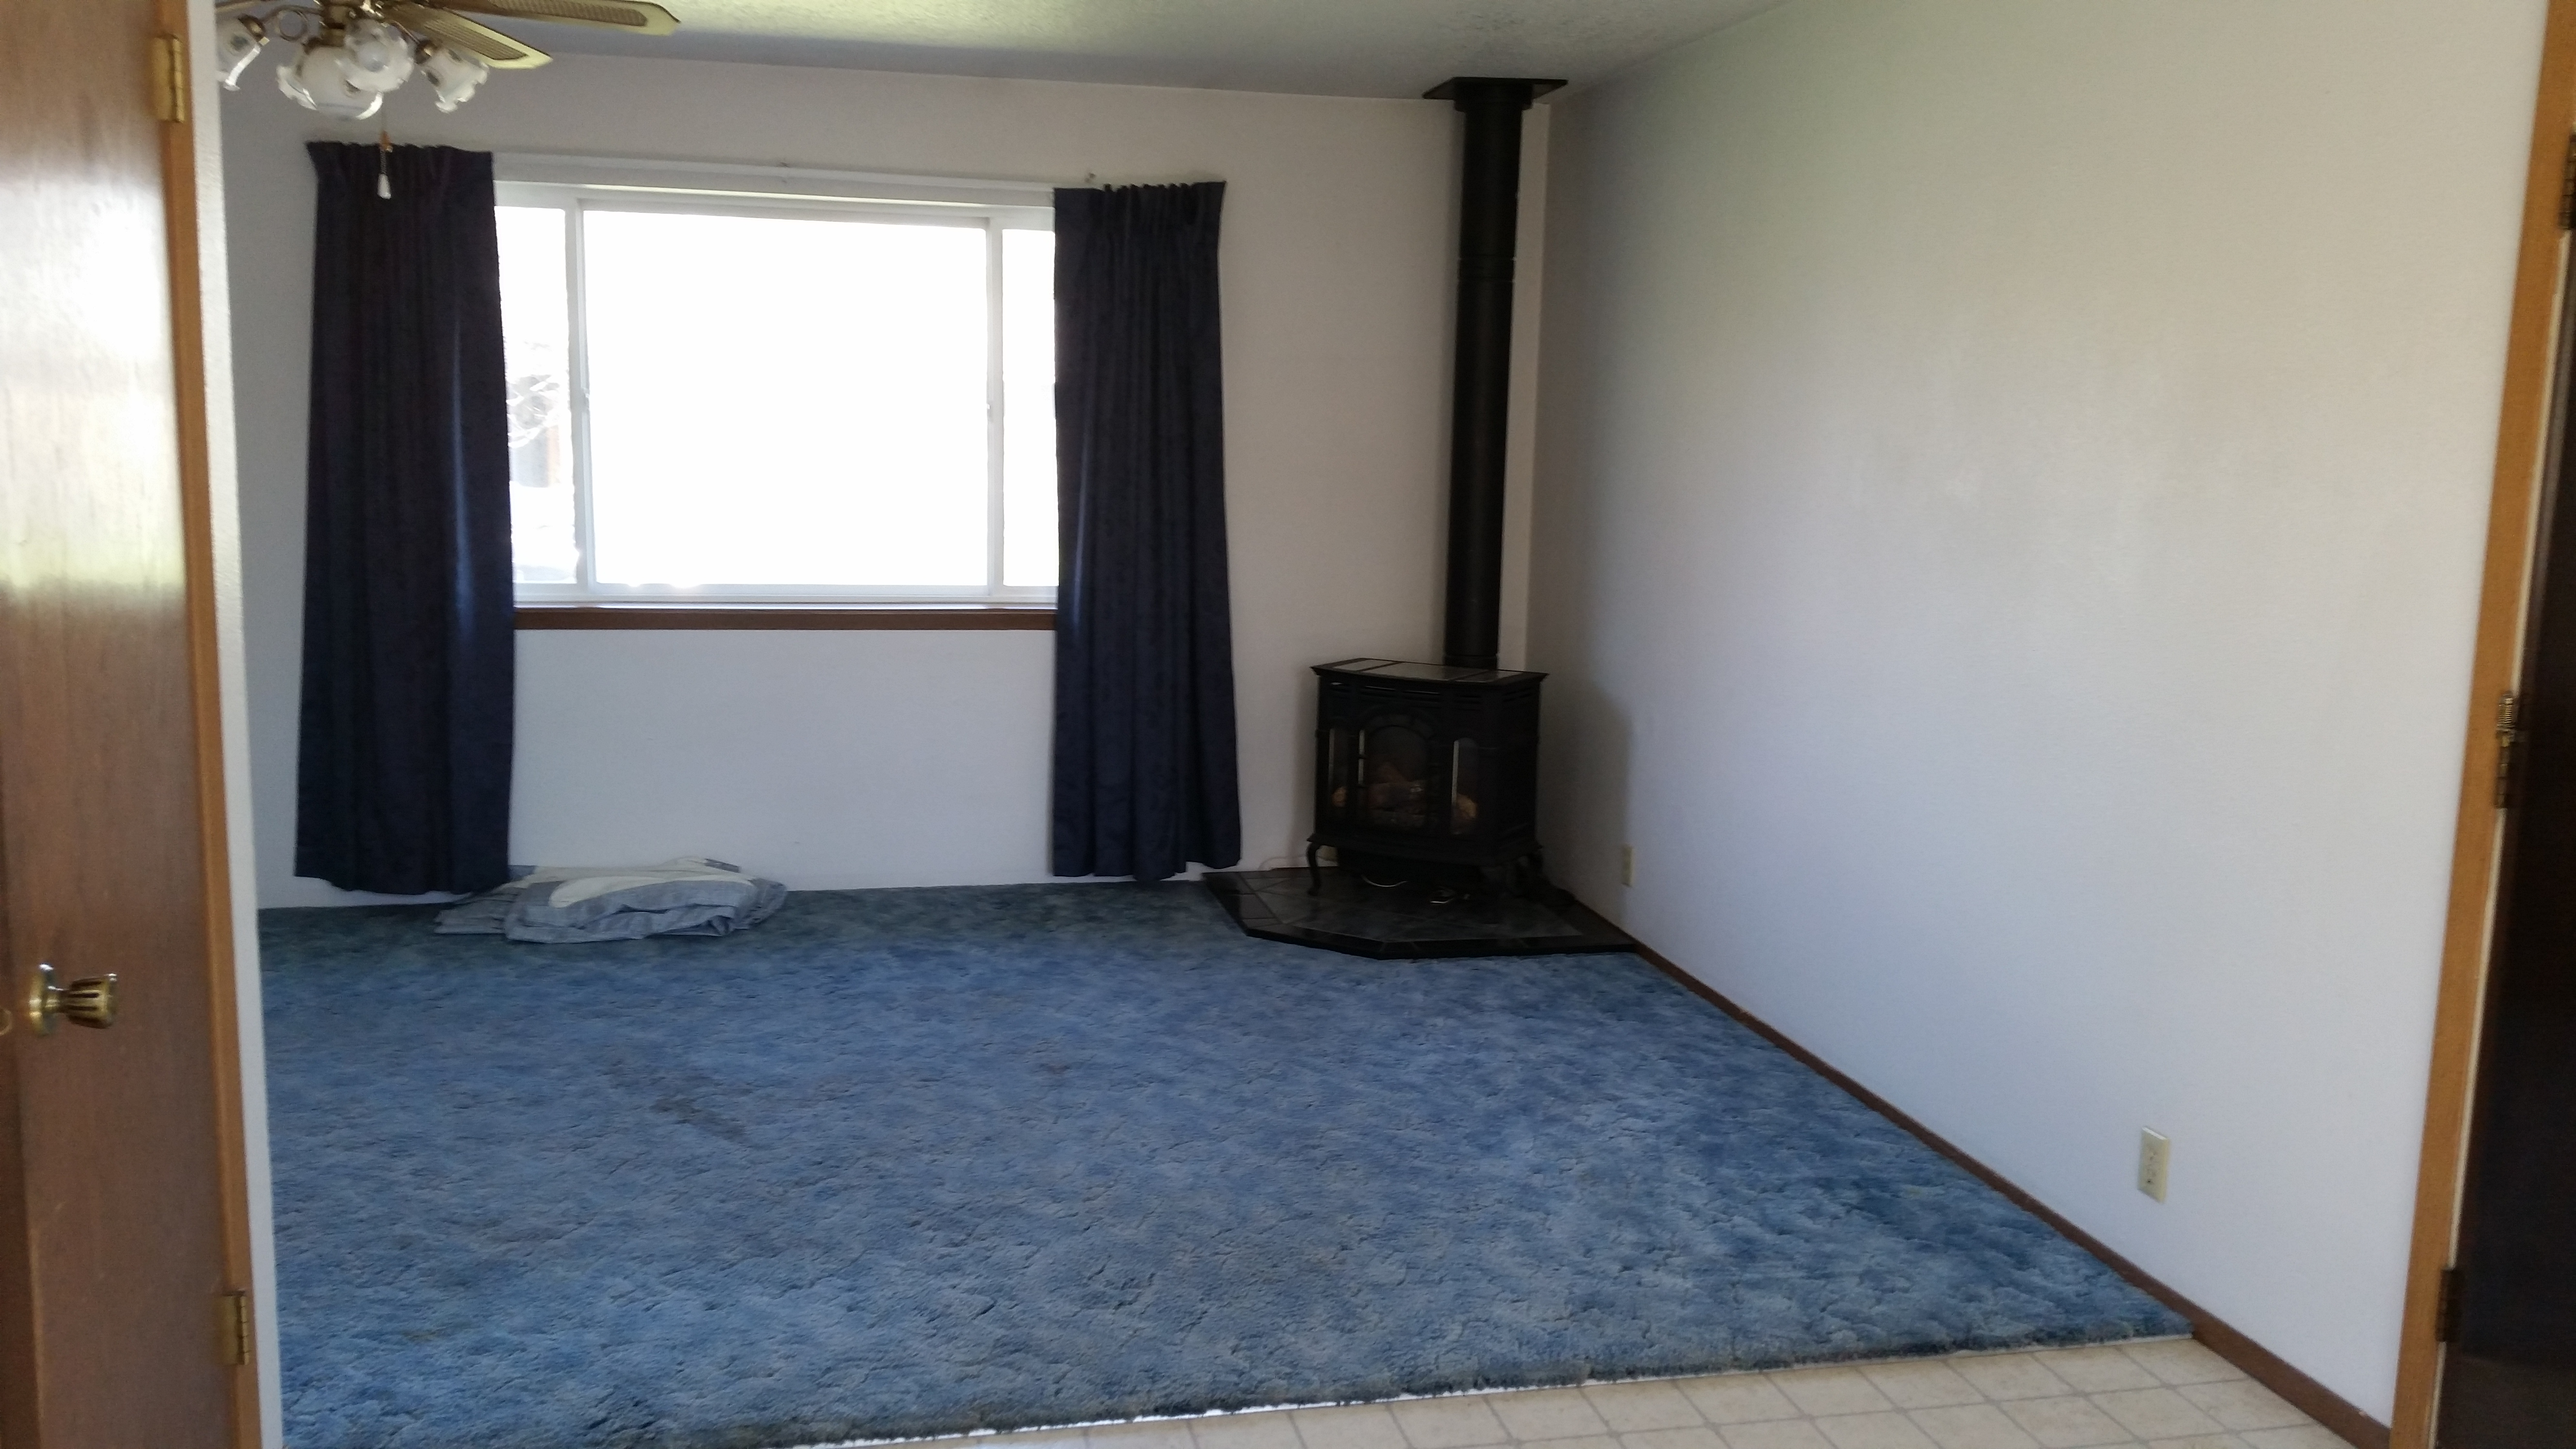 House Remodel – Before